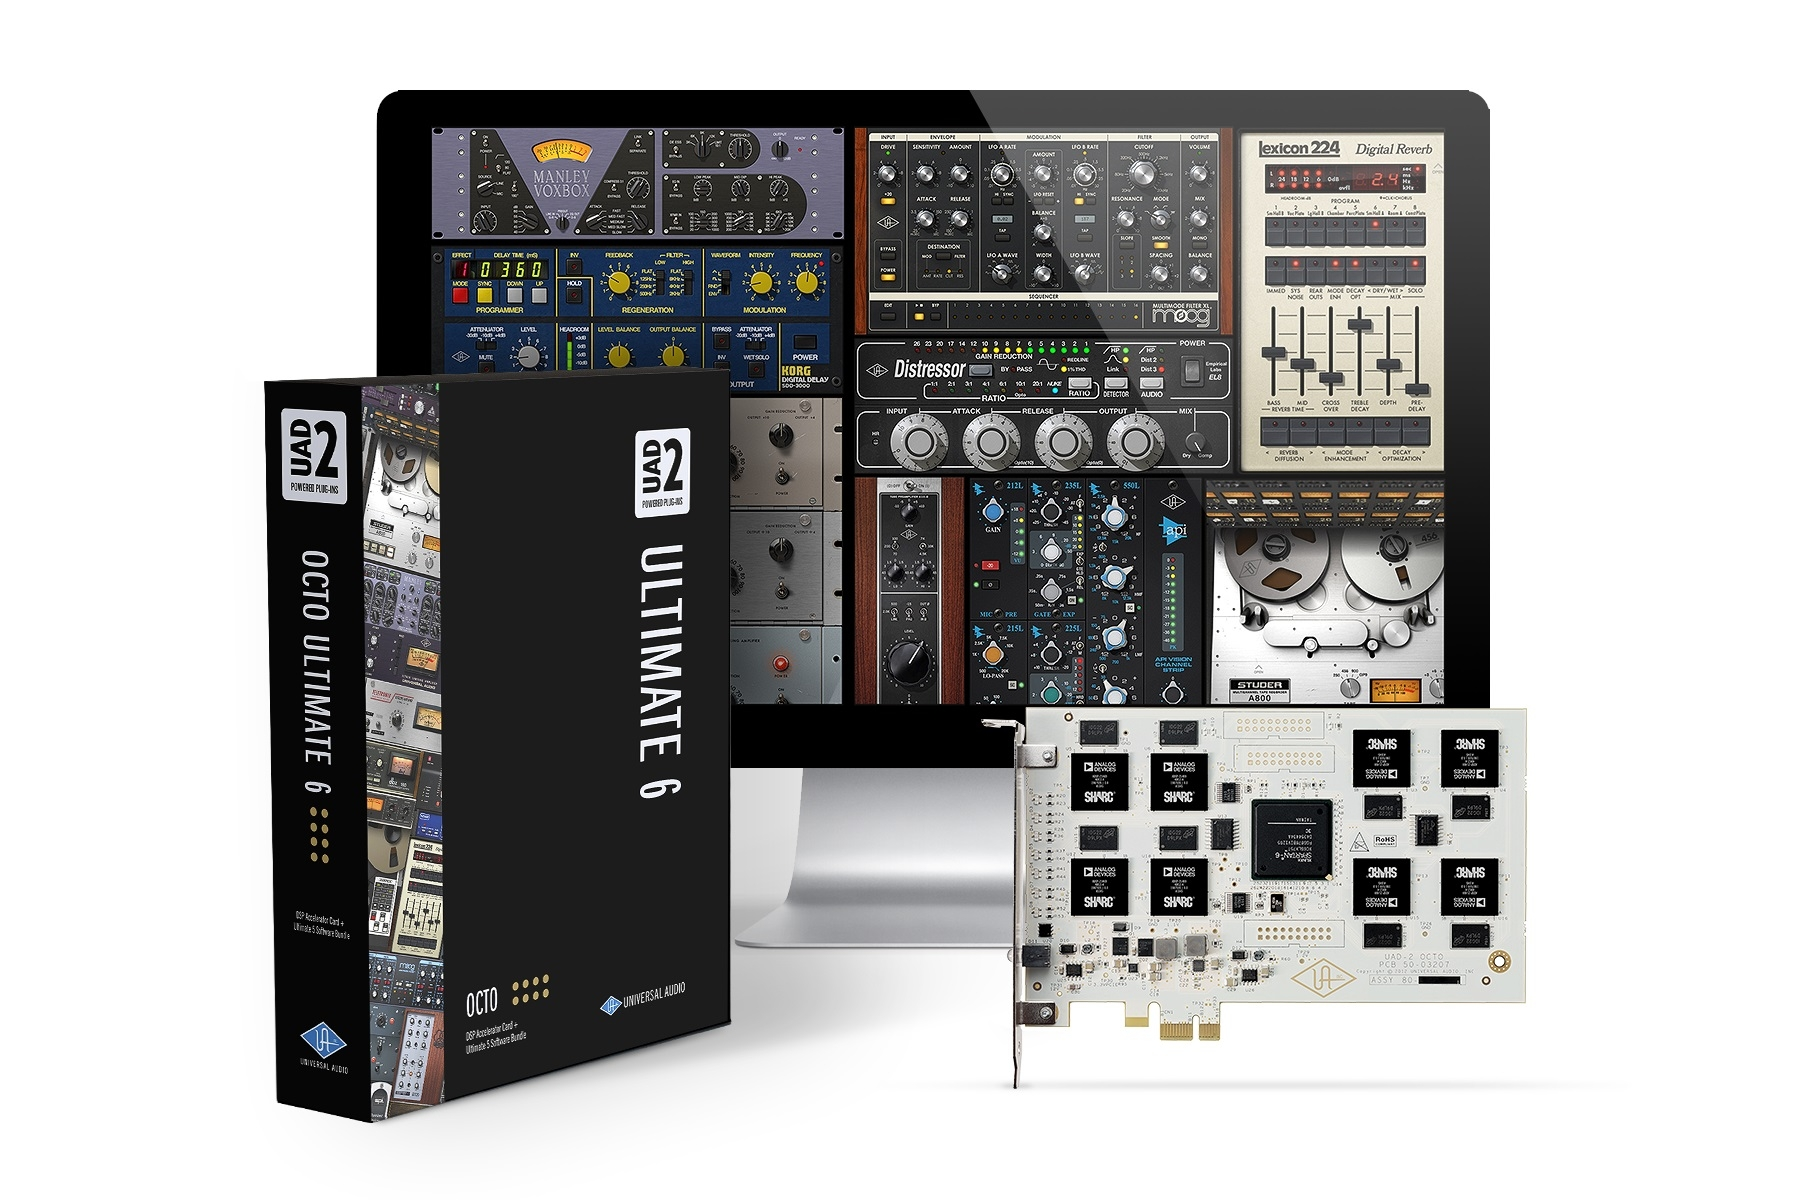 Universal Audio UAD-2 OCTO Ultimate 6 DSP Accelerator Card